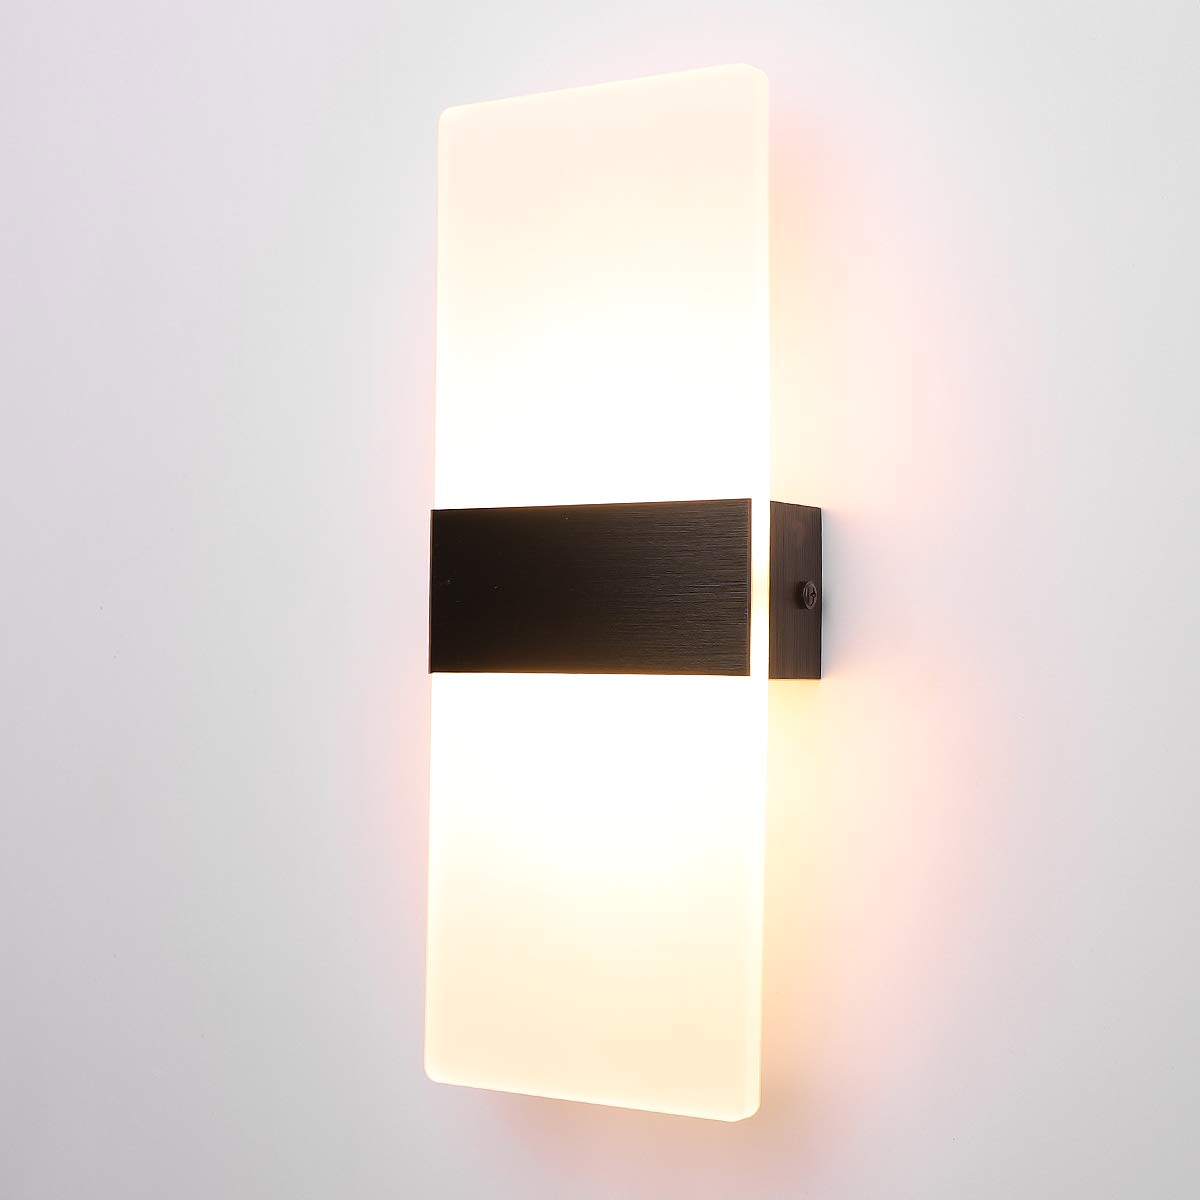 ALLTRUST Modern Acrylic 12W LED Wall Sconces Aluminum Lights Decorative Lamps Night Light Plug in Cord with on/Off Switch for Indoor Use